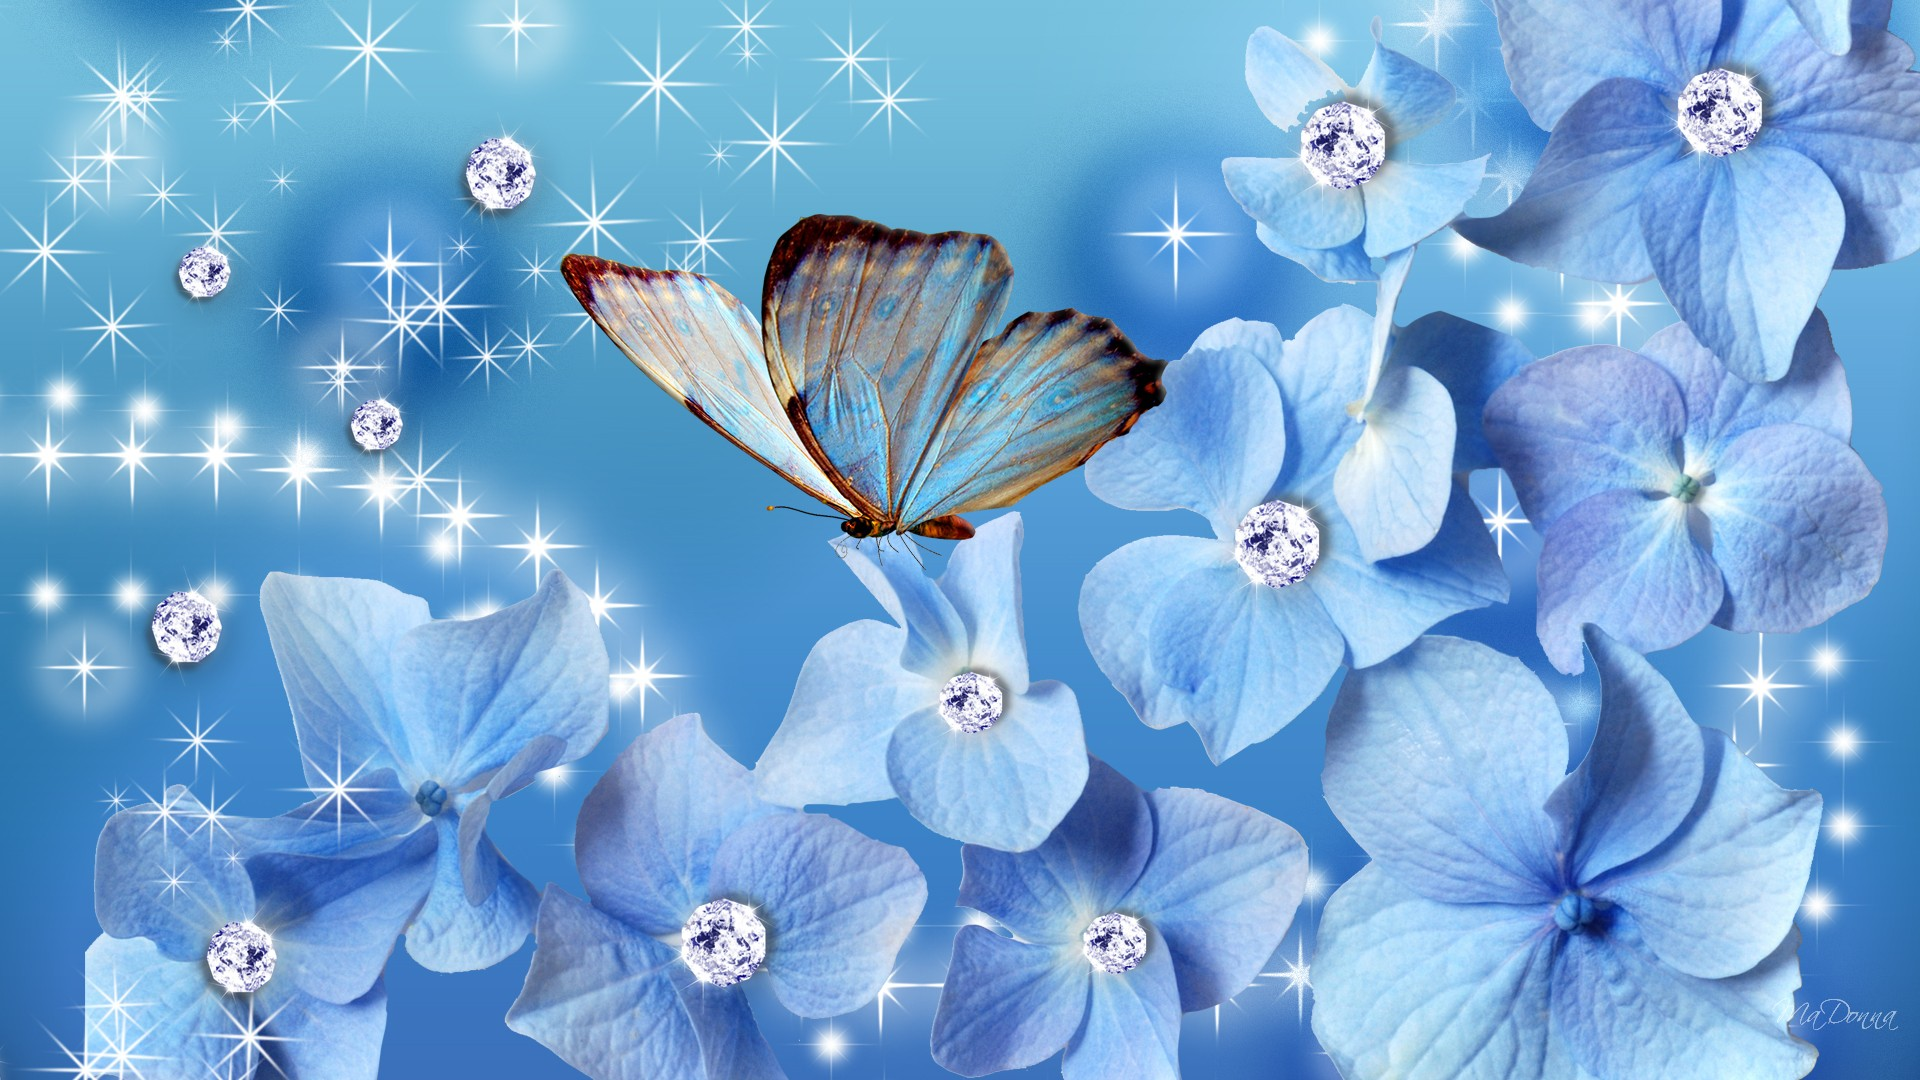 Blue Butterfly Wallpaper HD 1920x1080